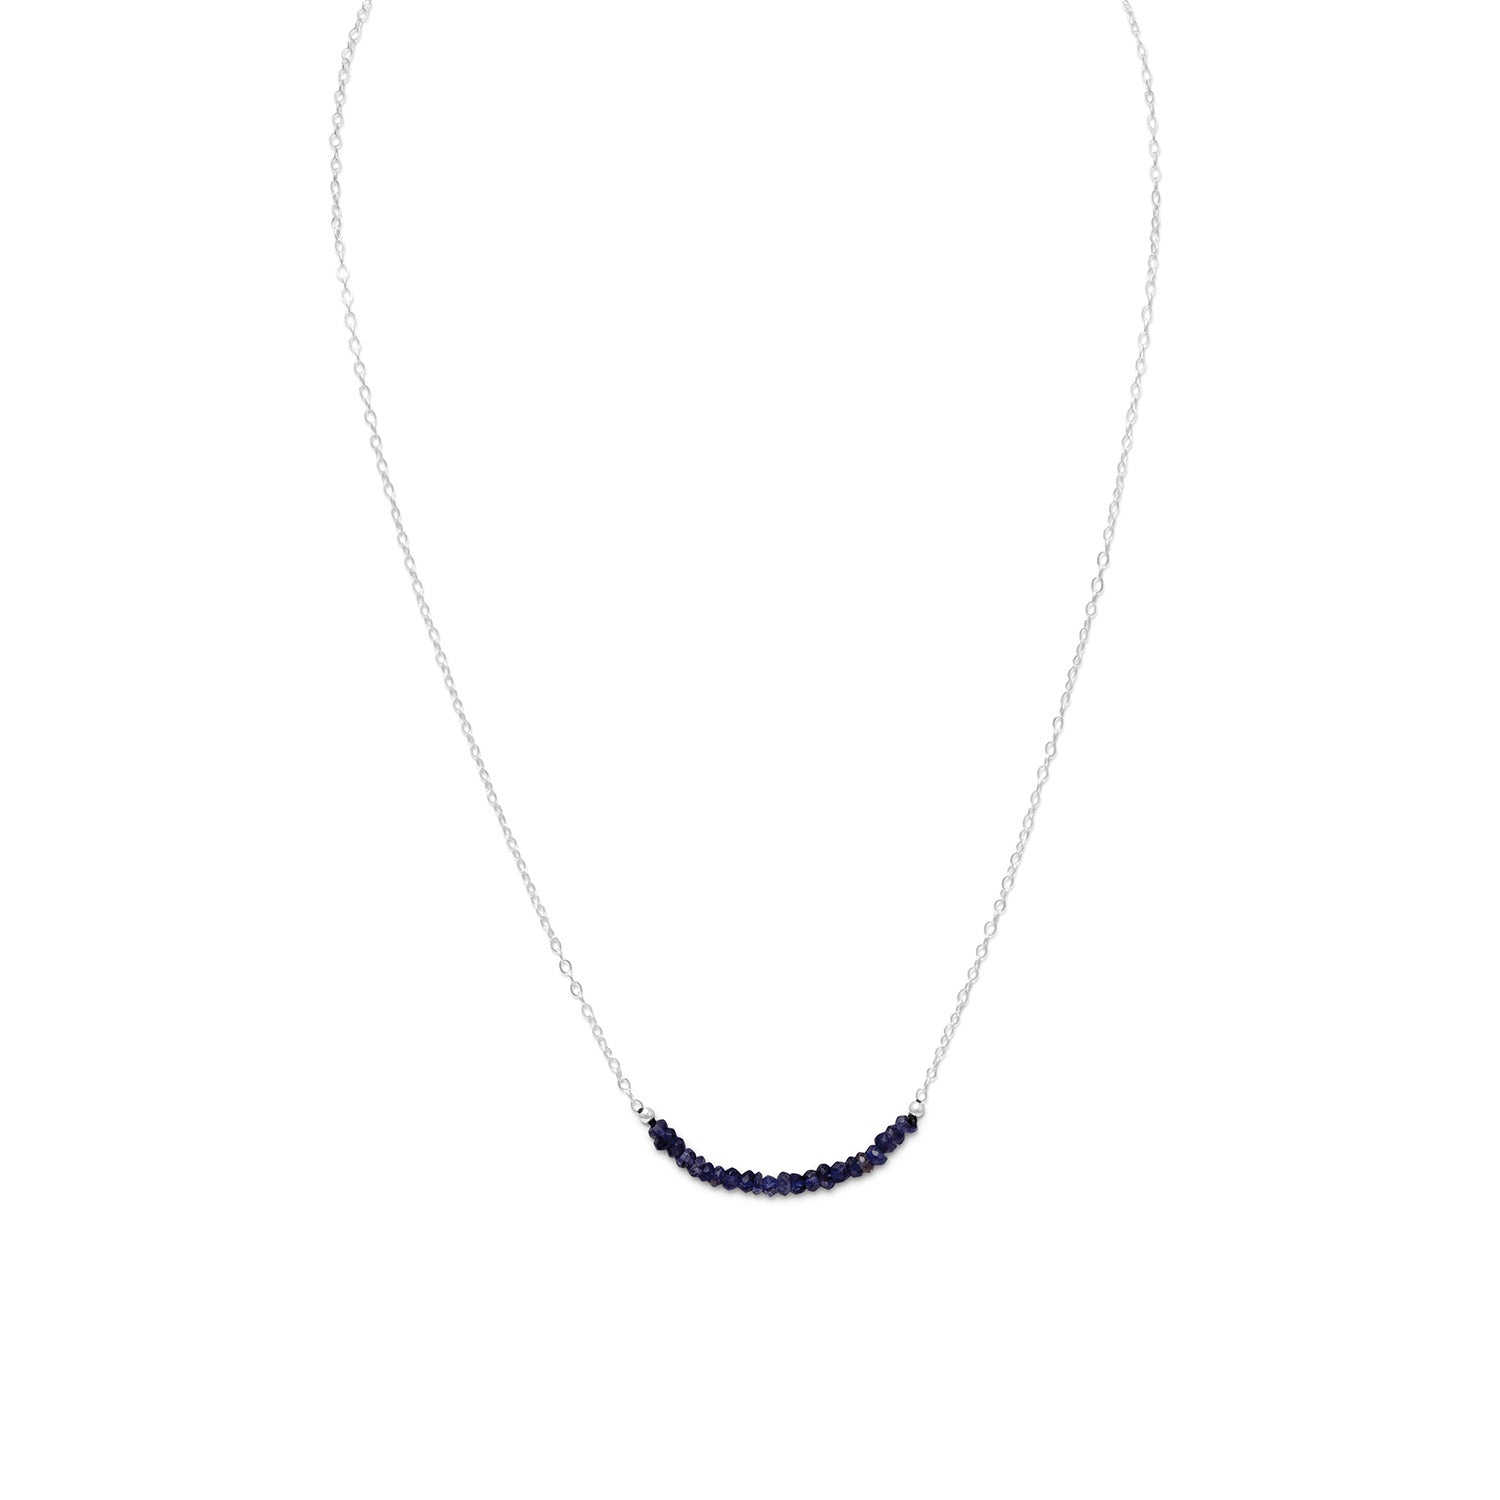 iolite blue lg necklaces topaz std brio zoom axd necklace hover to jewelry